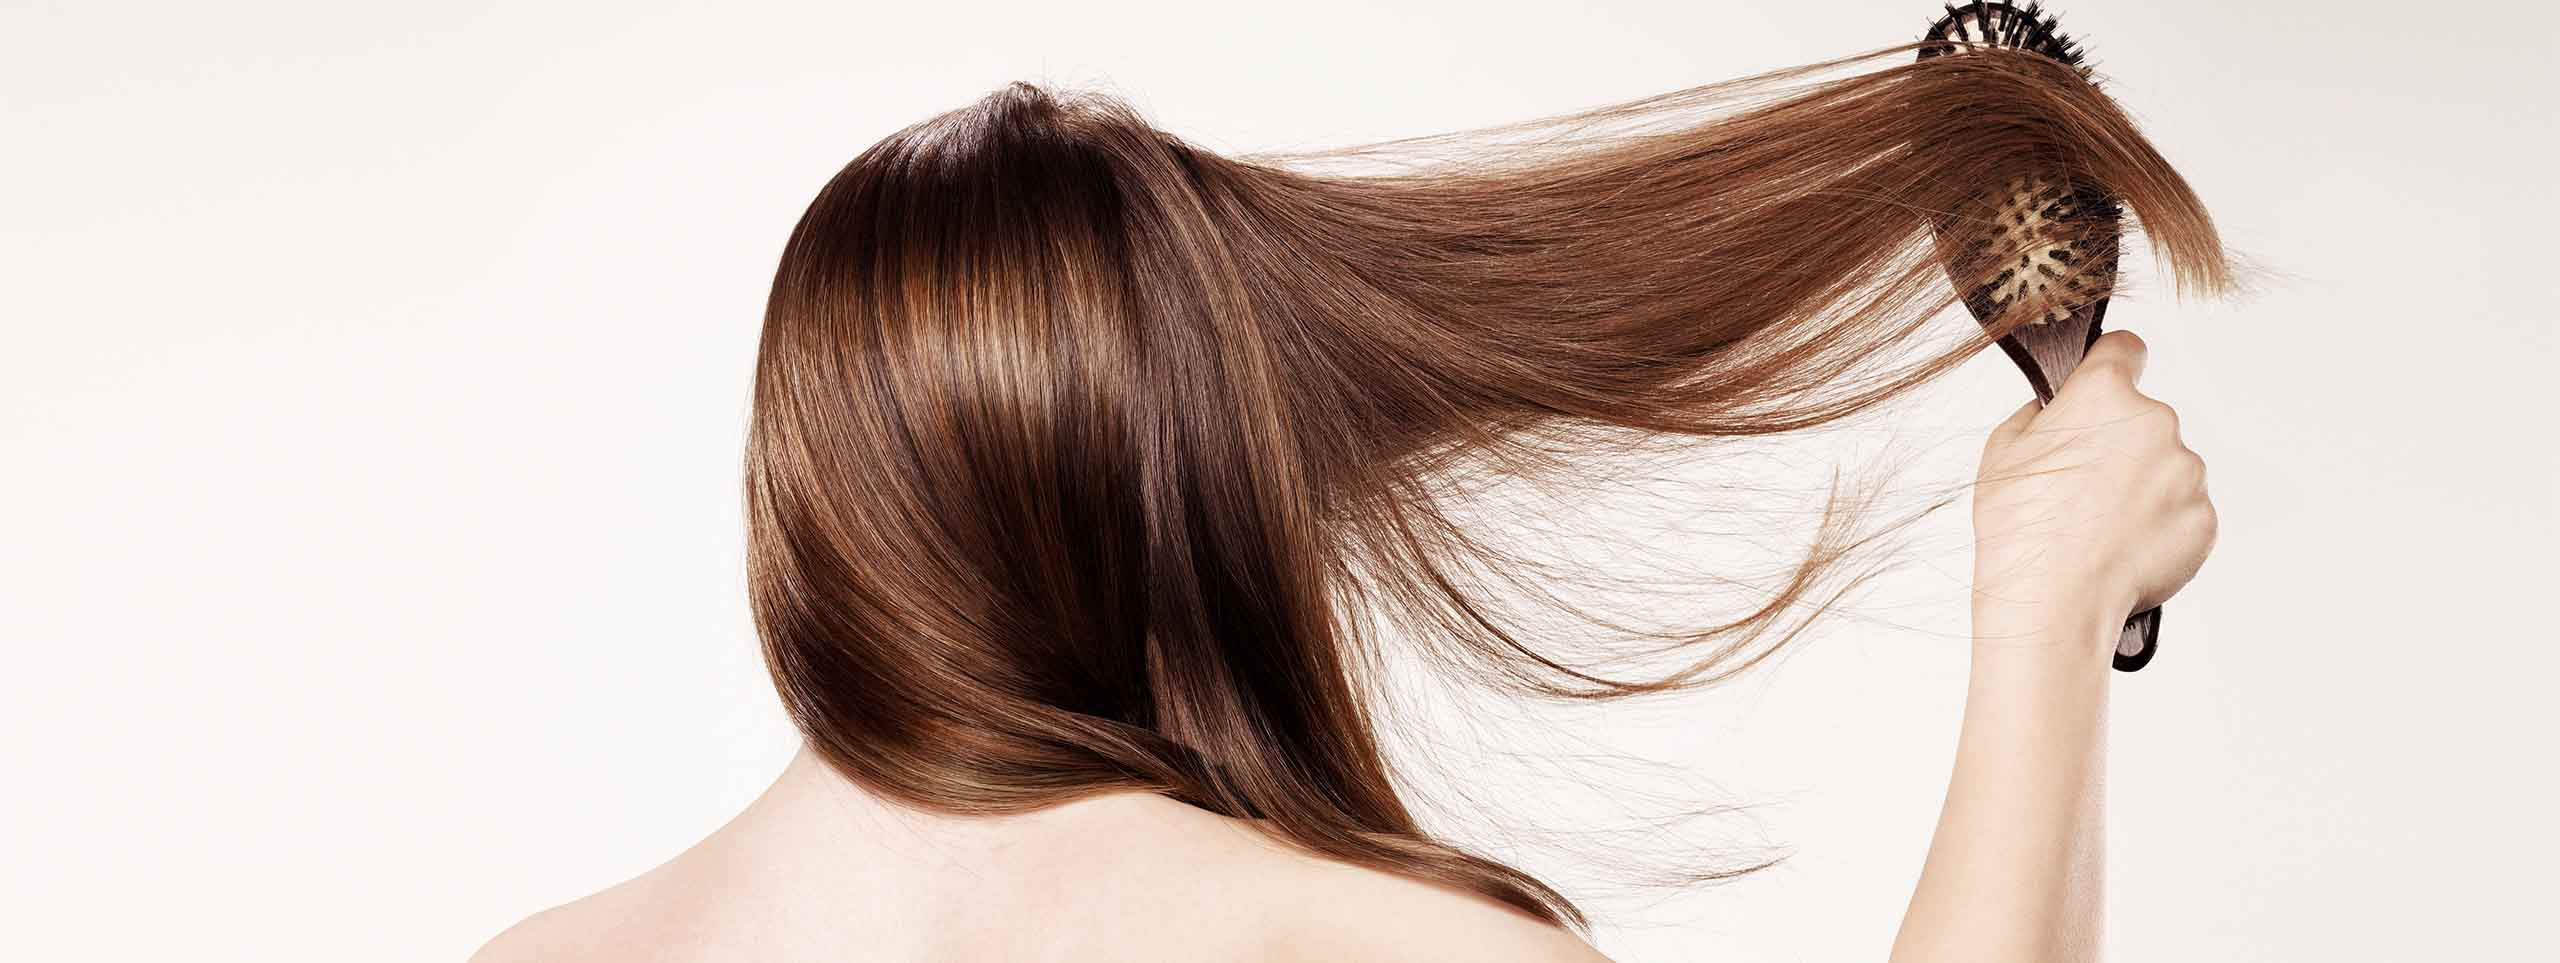 Hair Myth: Will 100 Brushstrokes A Day Make Your Hair Shine?